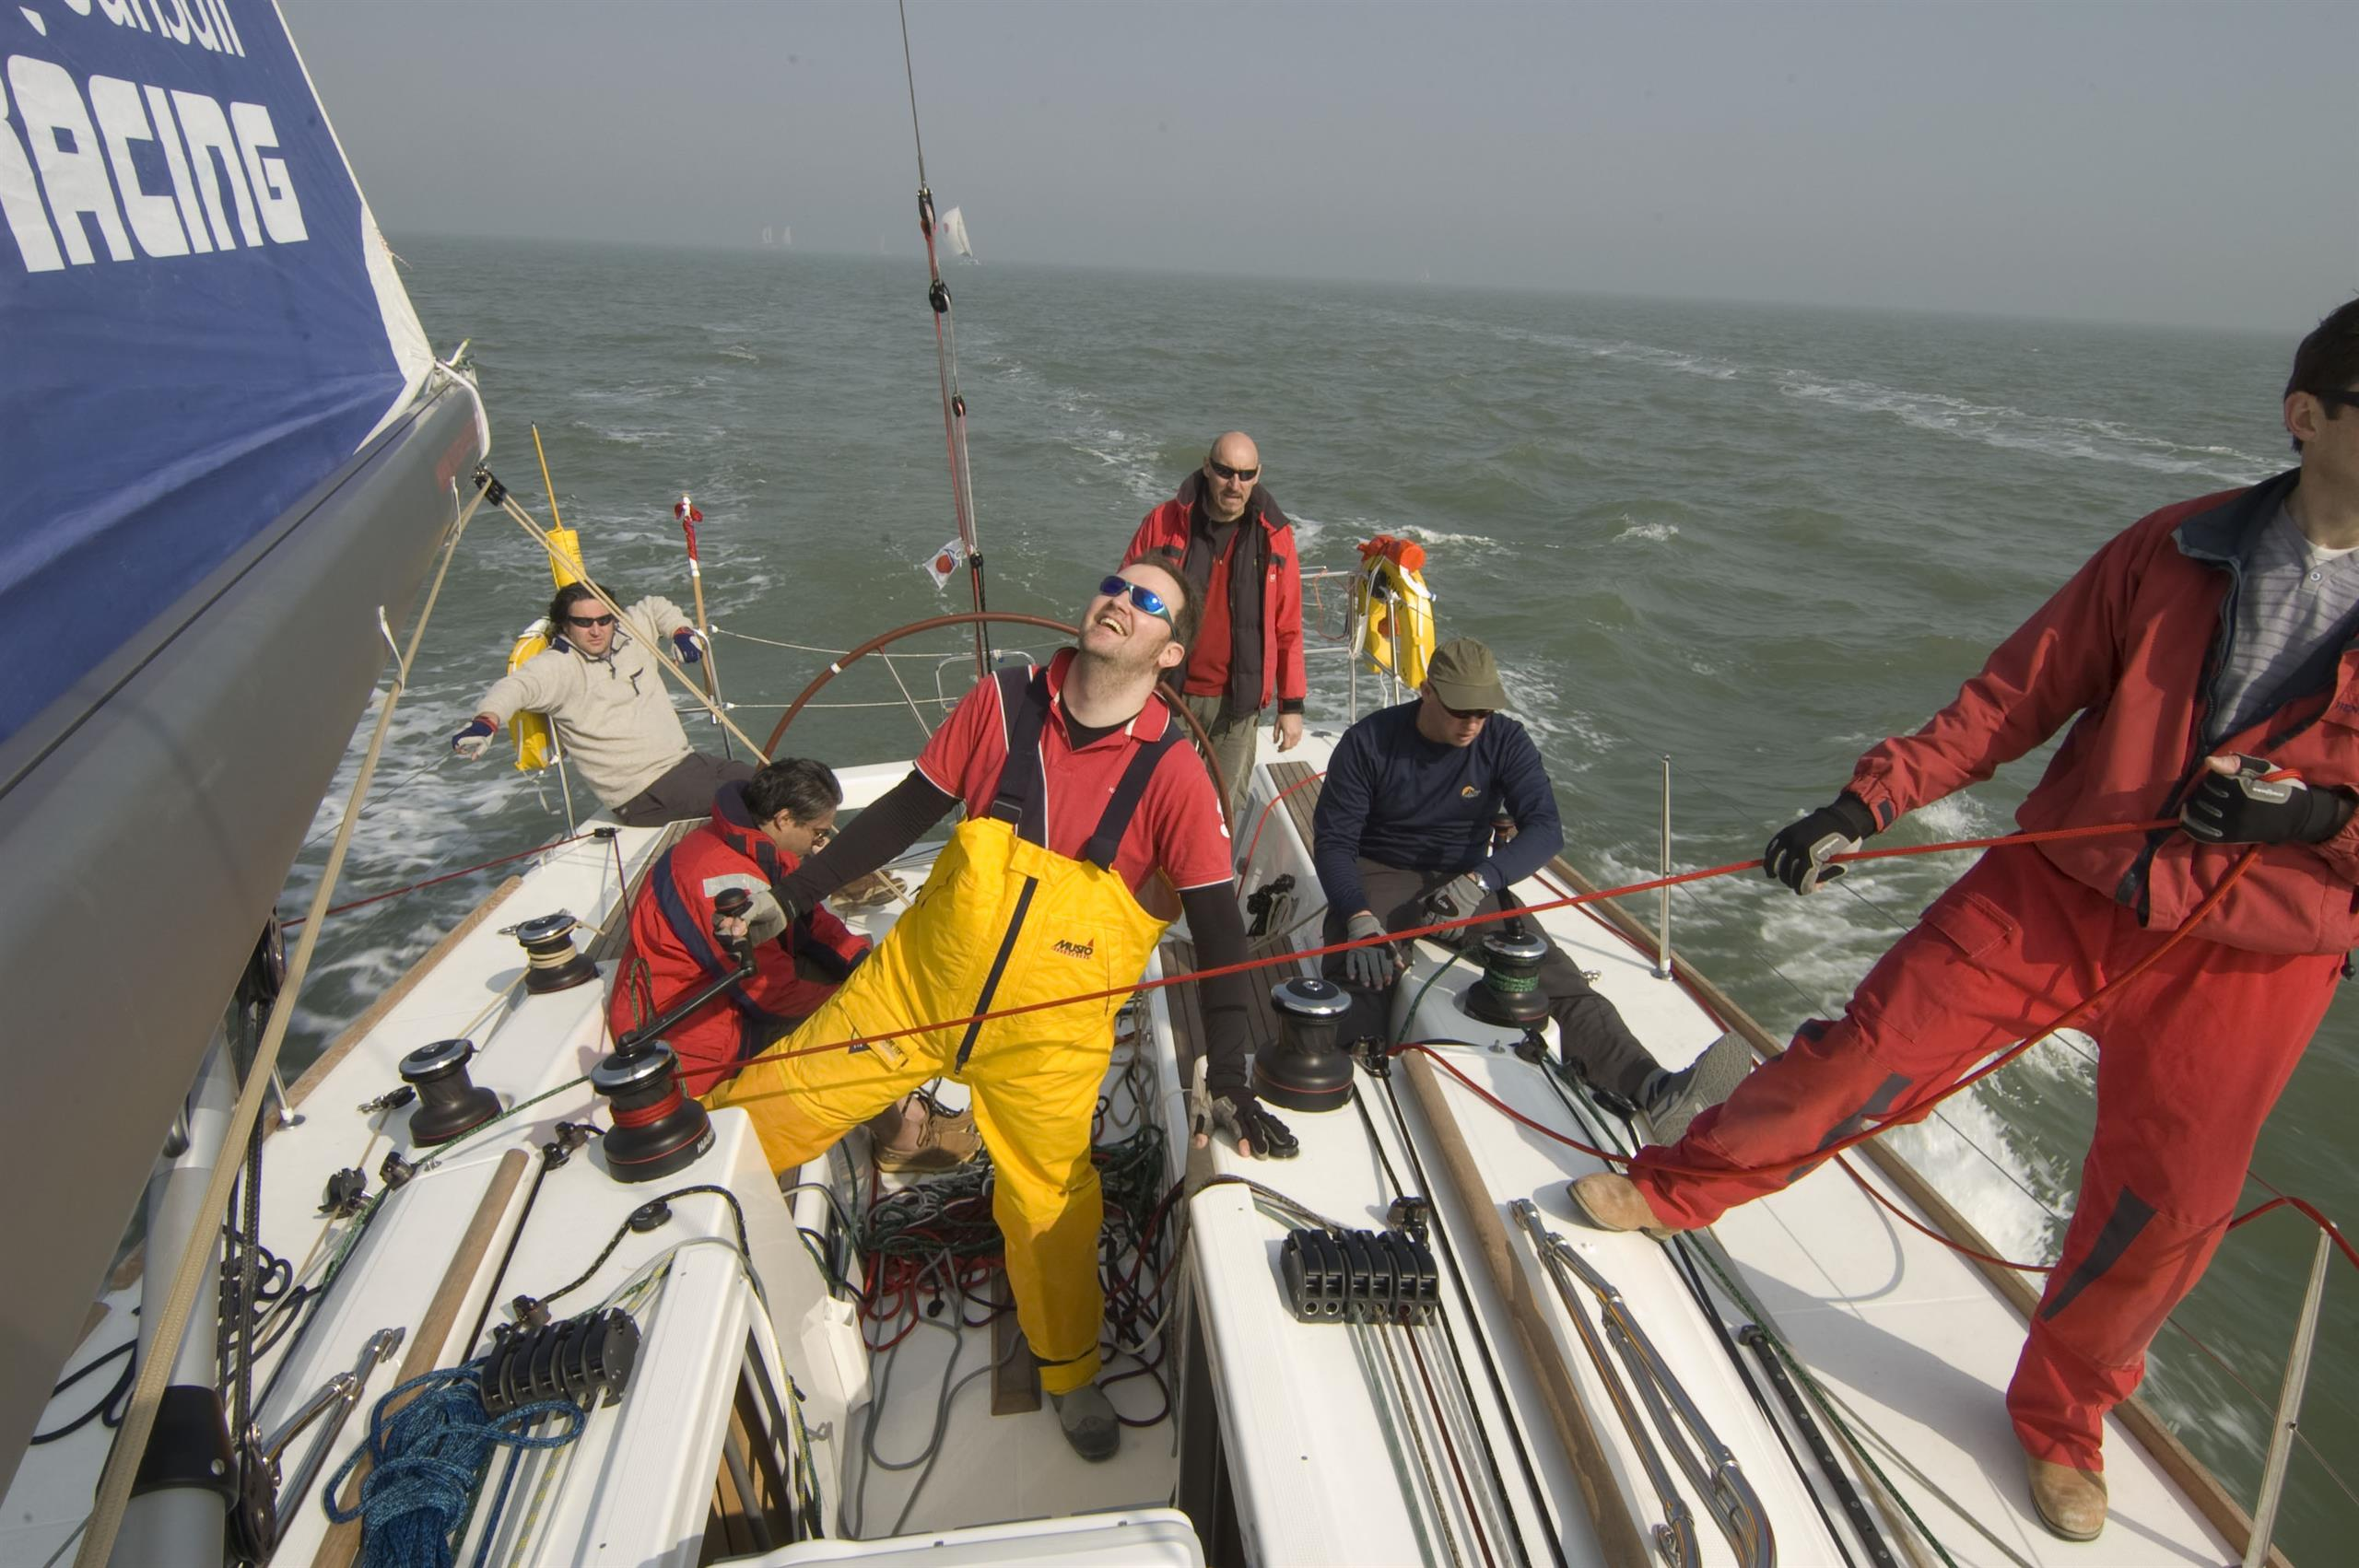 Paul offshore racing on the English Channel, UK.